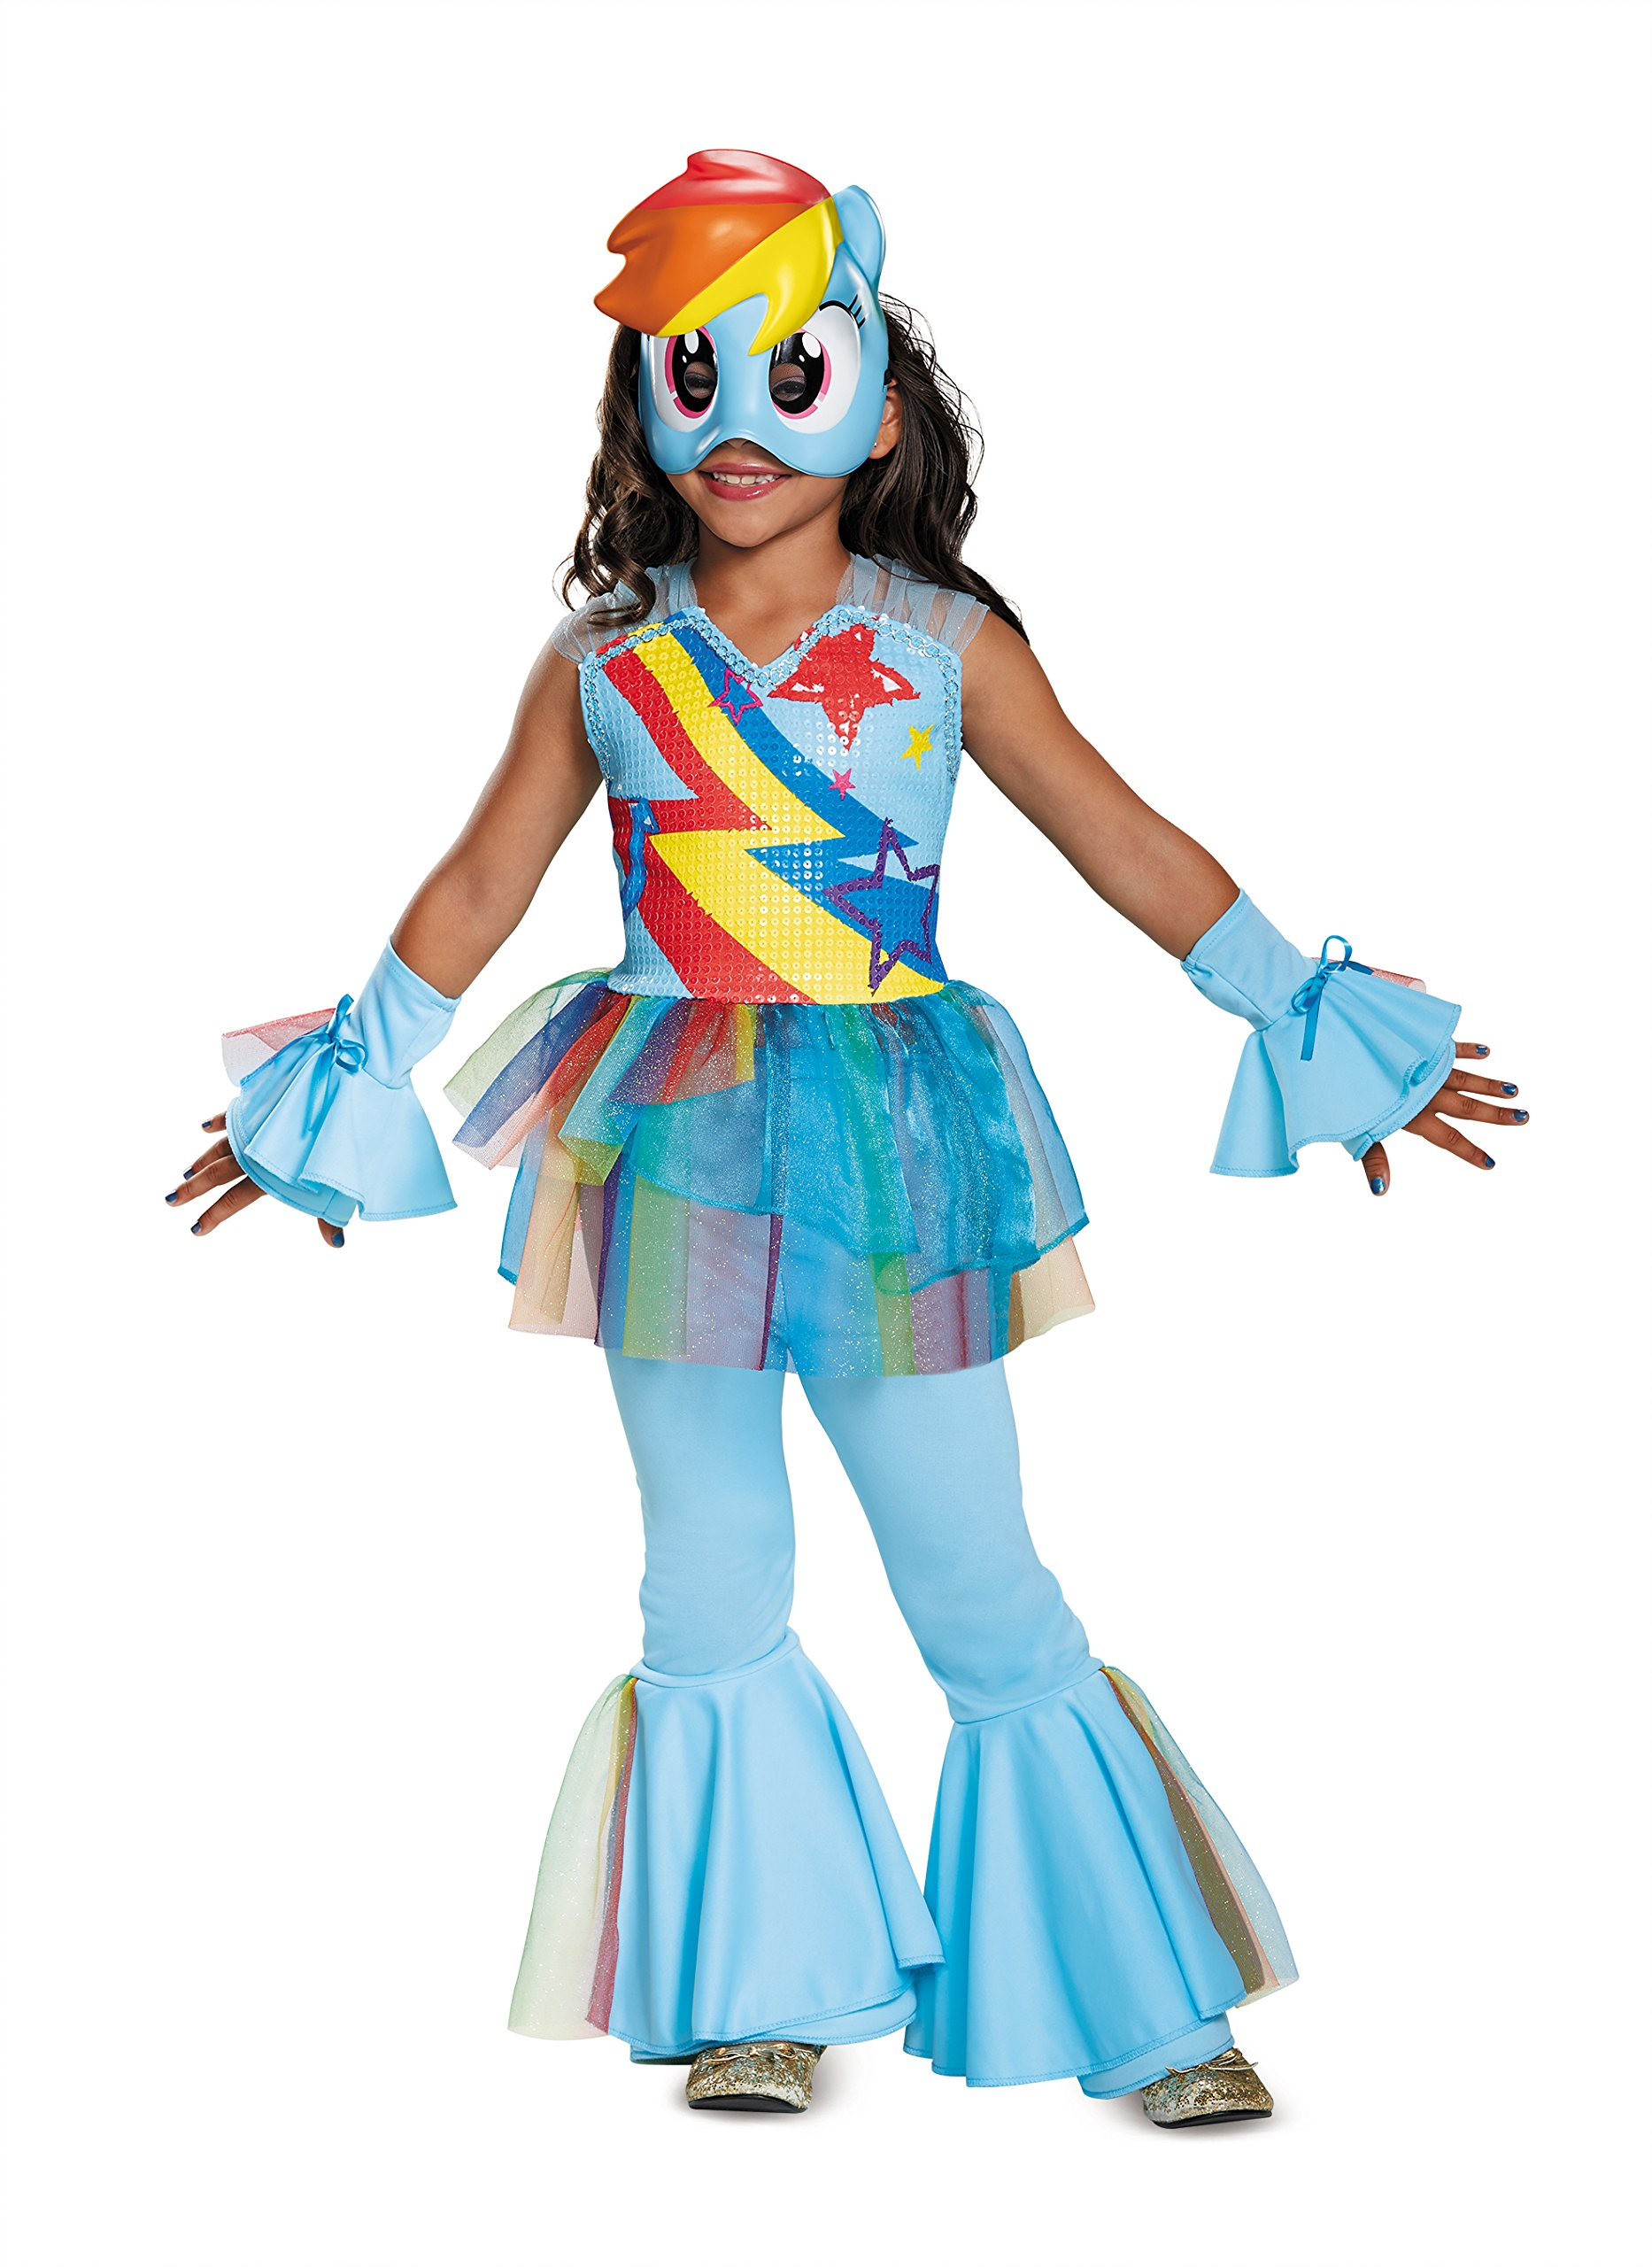 Rainbow Dash Movie Deluxe Costume, Blue, Small (4-6X)